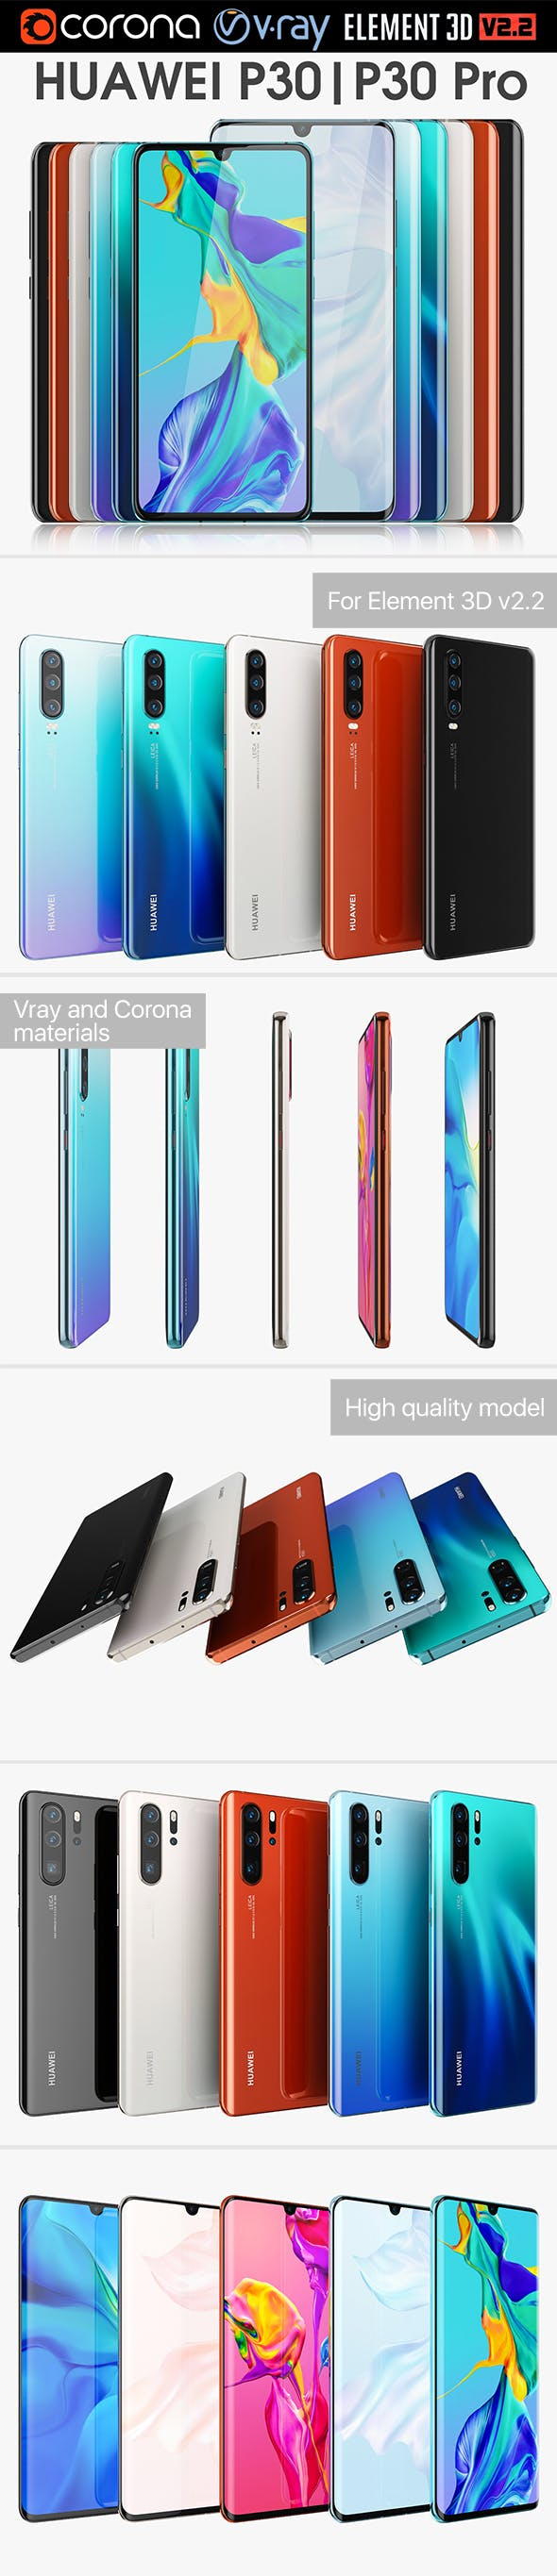 Huawei P30 and P30 Pro Collection - 3DOcean Item for Sale